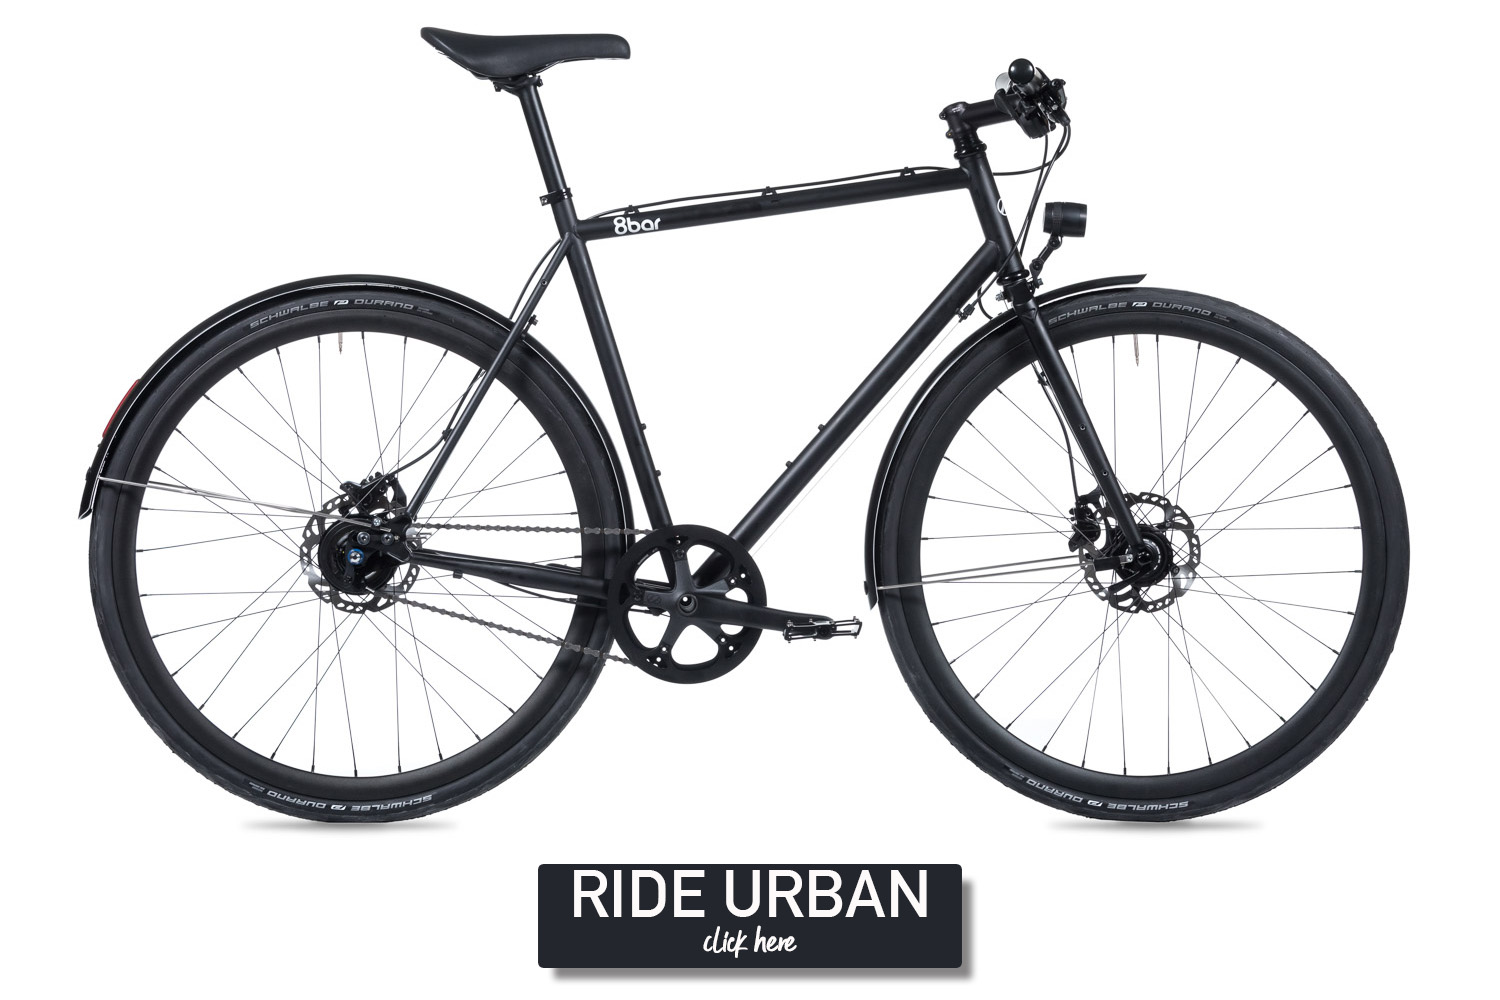 Black bike on a white background.The bike is an 8bar Mitte Steel Urban with fenders, lights and disc brakes.